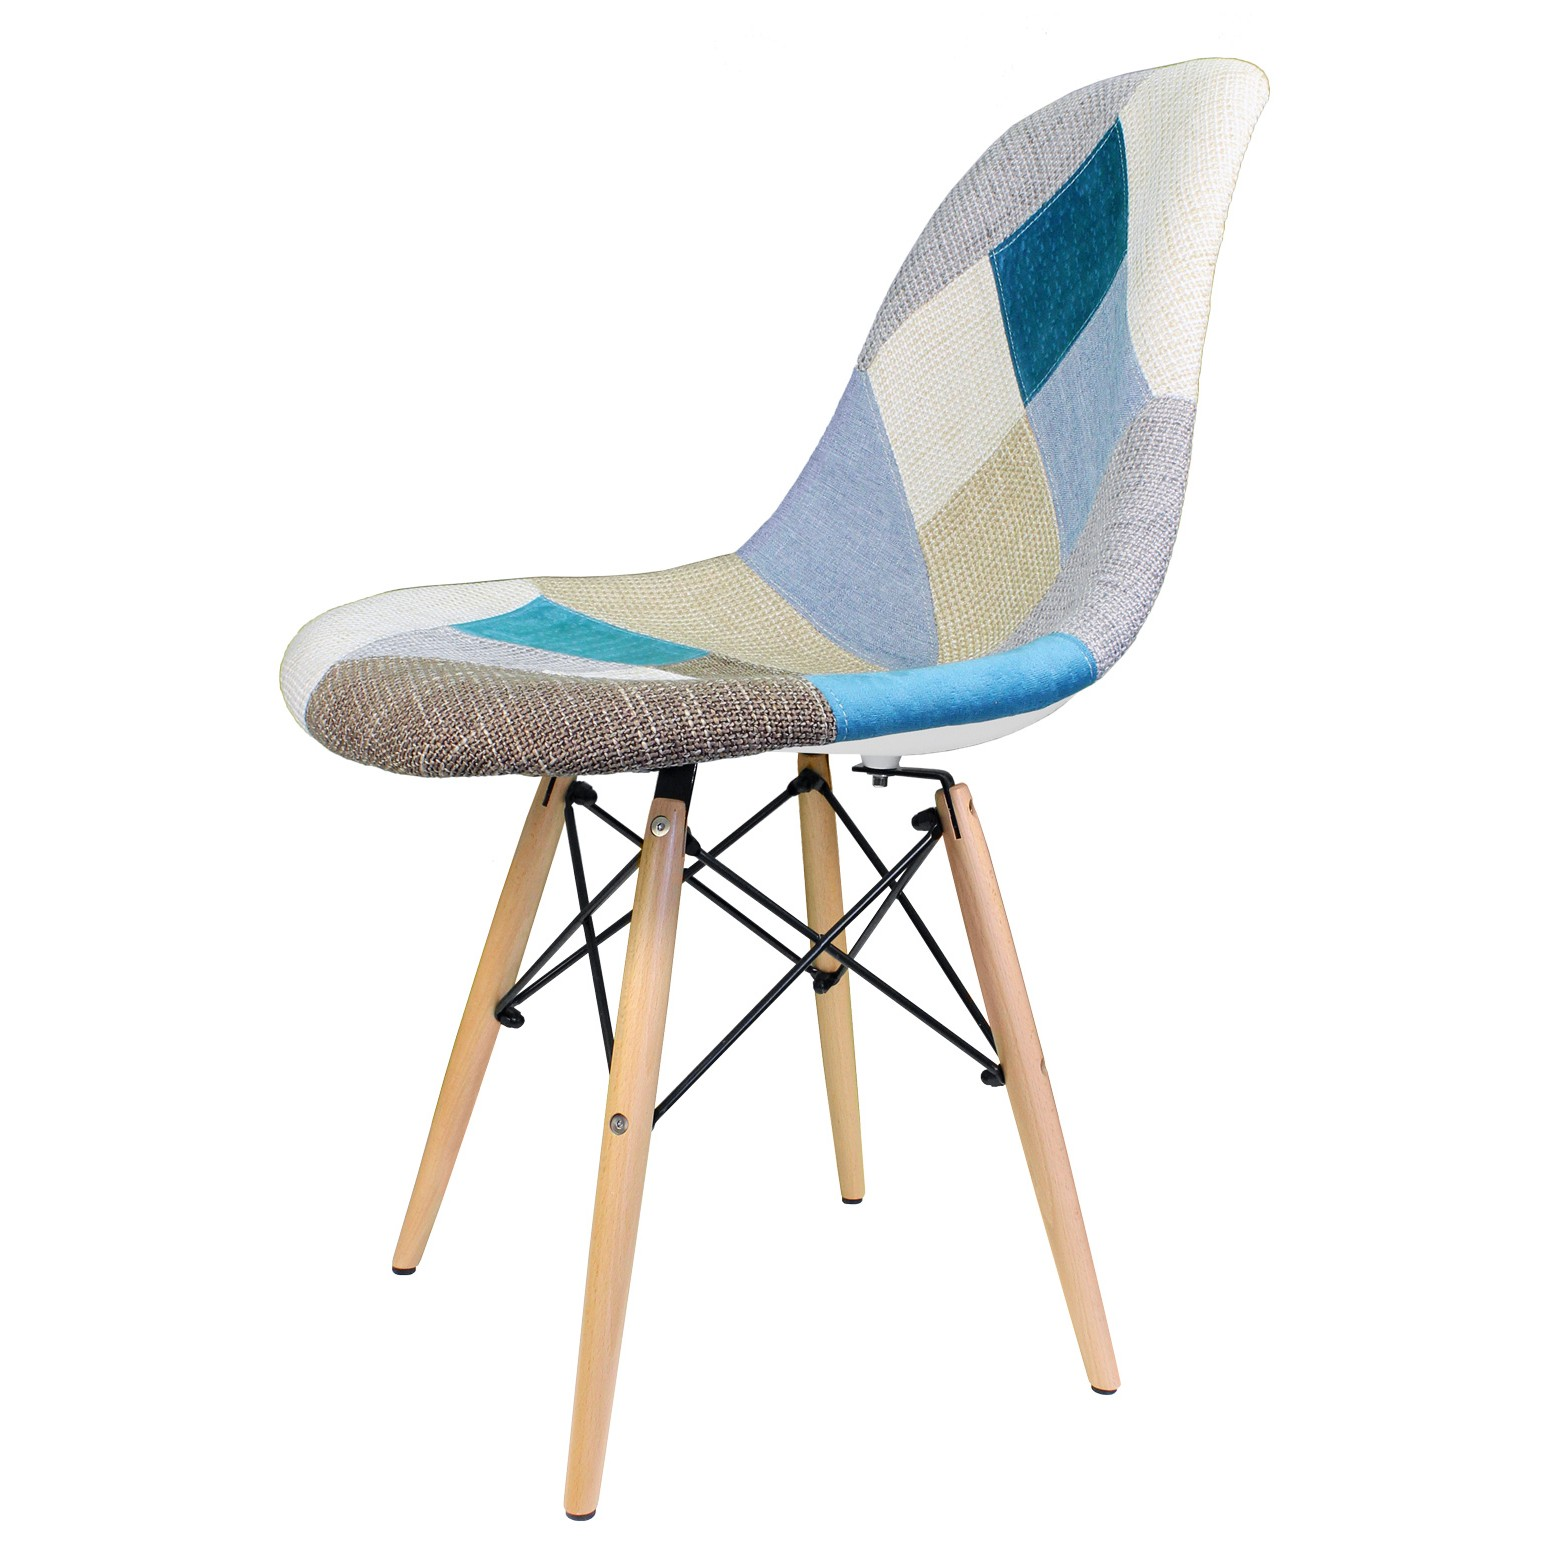 Patchwork Fabric Upholstered Mid Century Eames Style  : dsw fab patchwork2 from www.emoderndecor.com size 1554 x 1554 jpeg 226kB